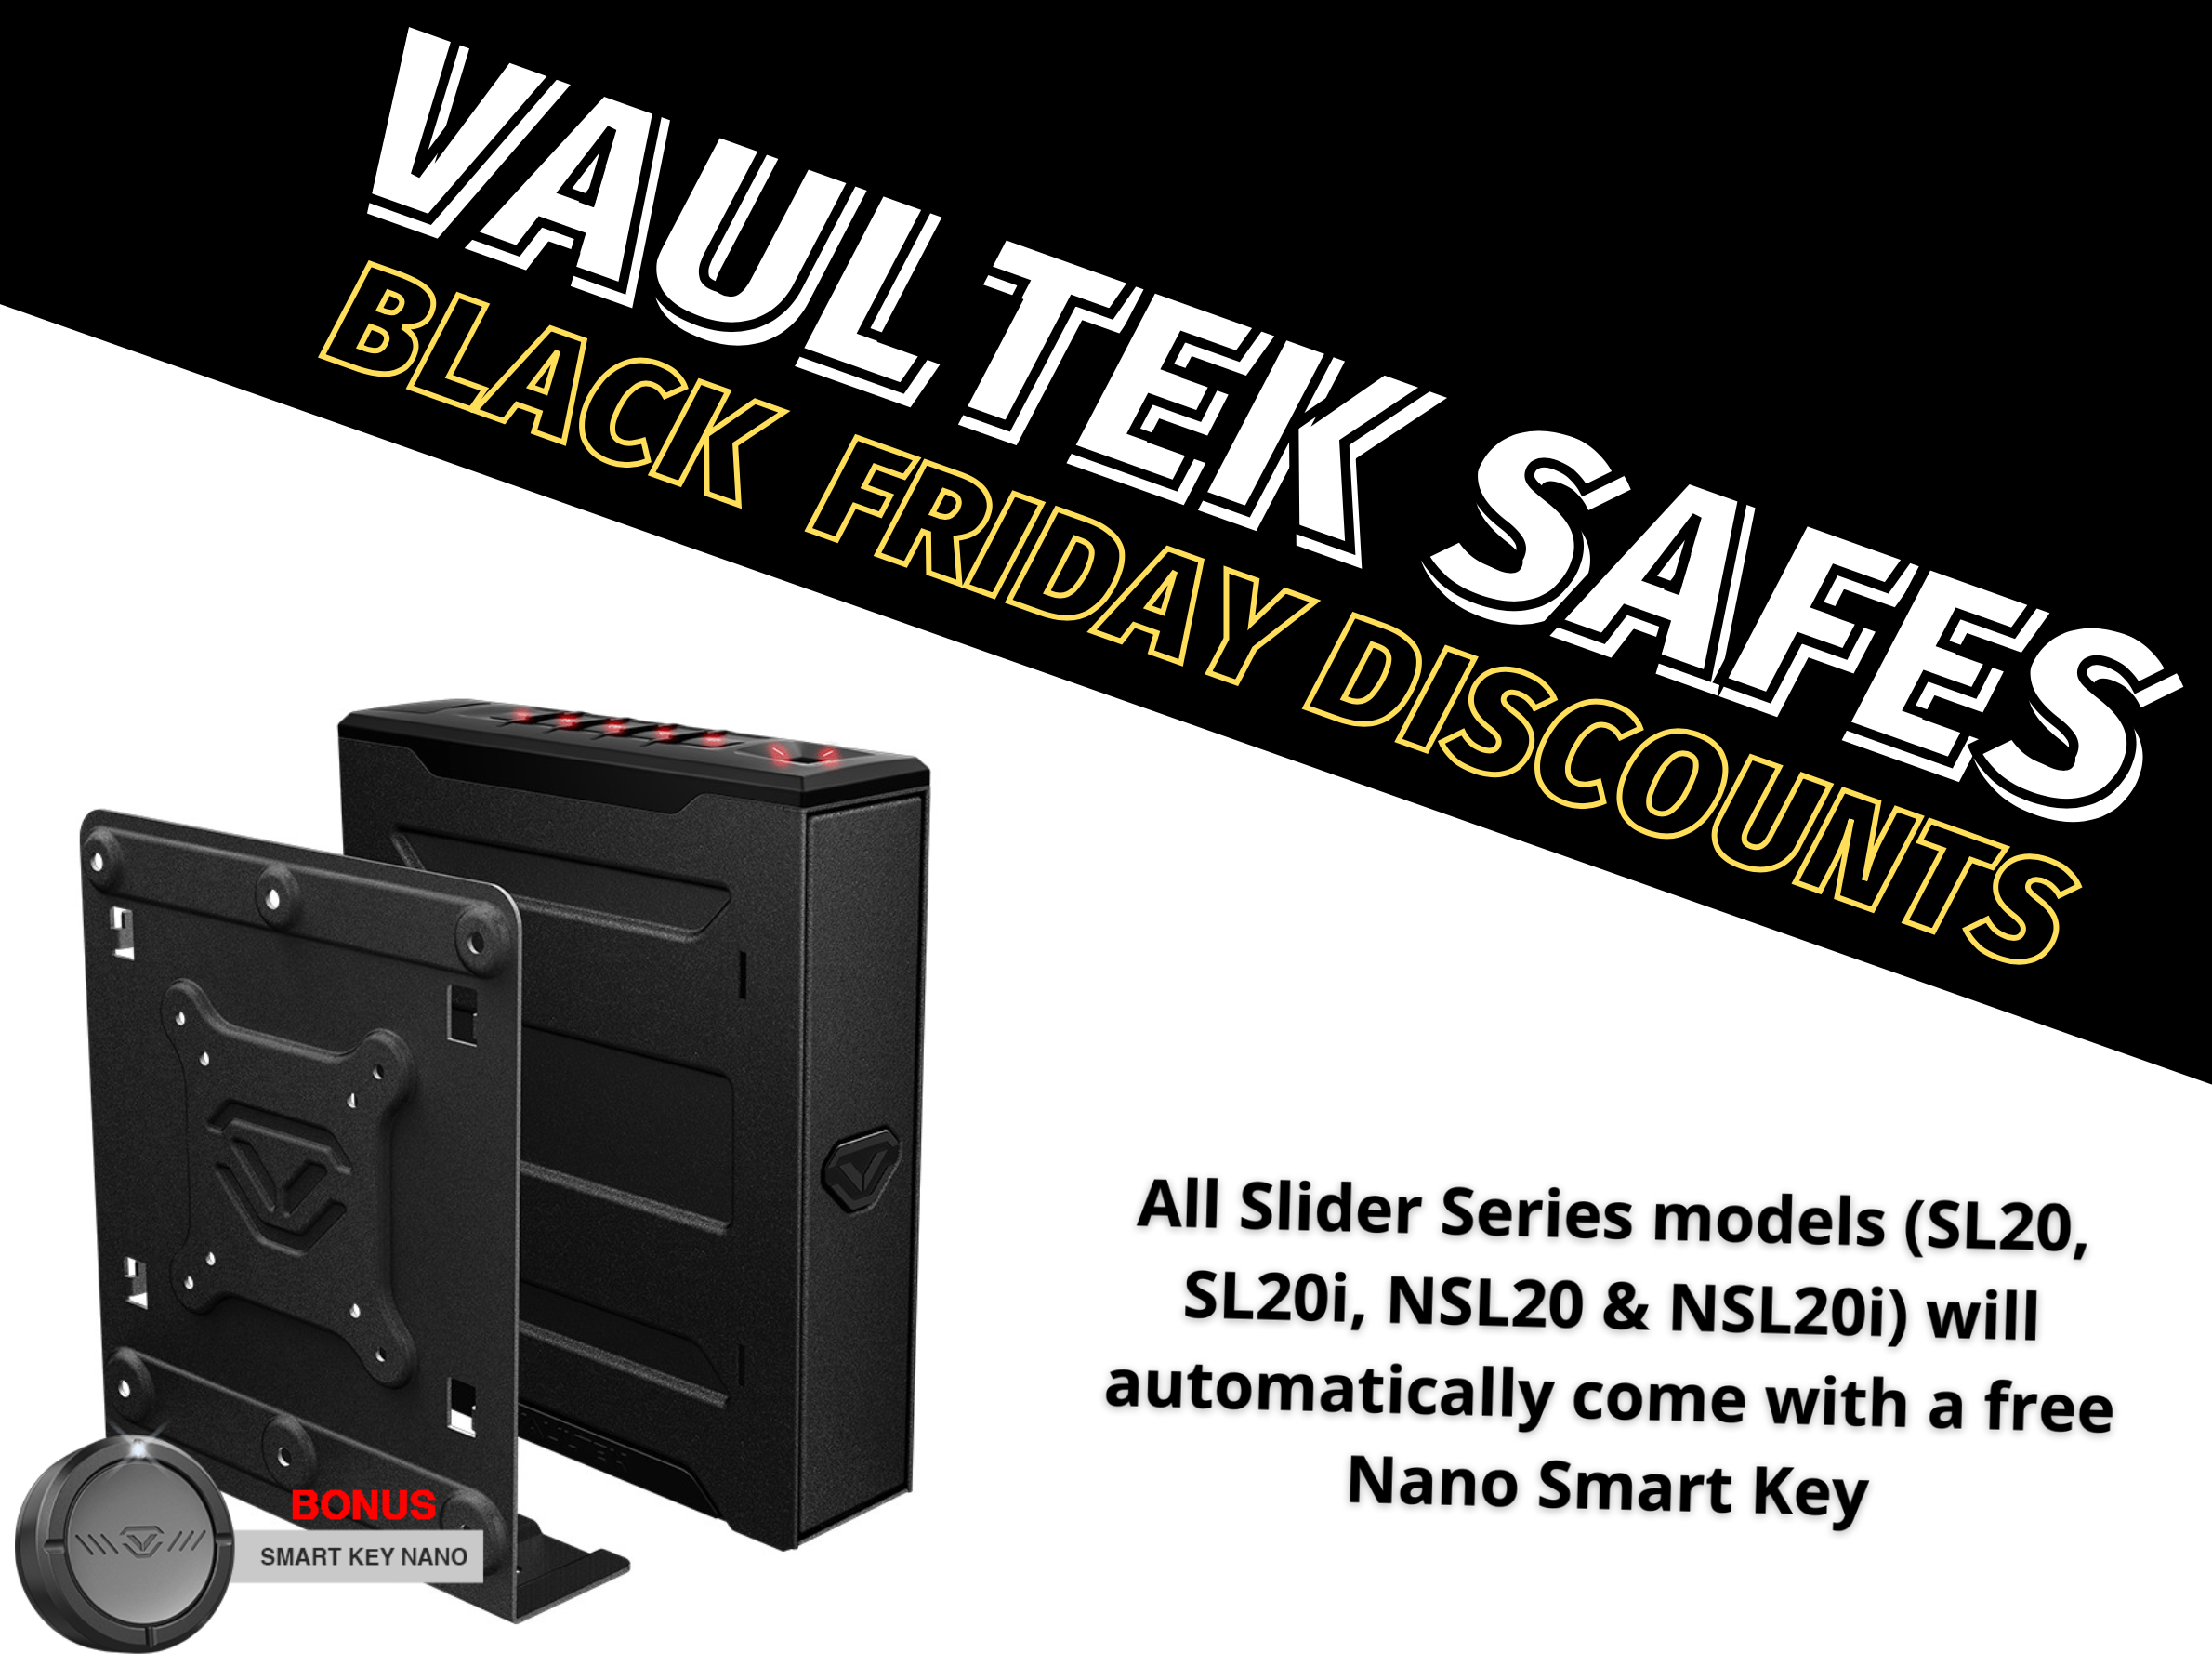 Vaultek Slider Black Friday